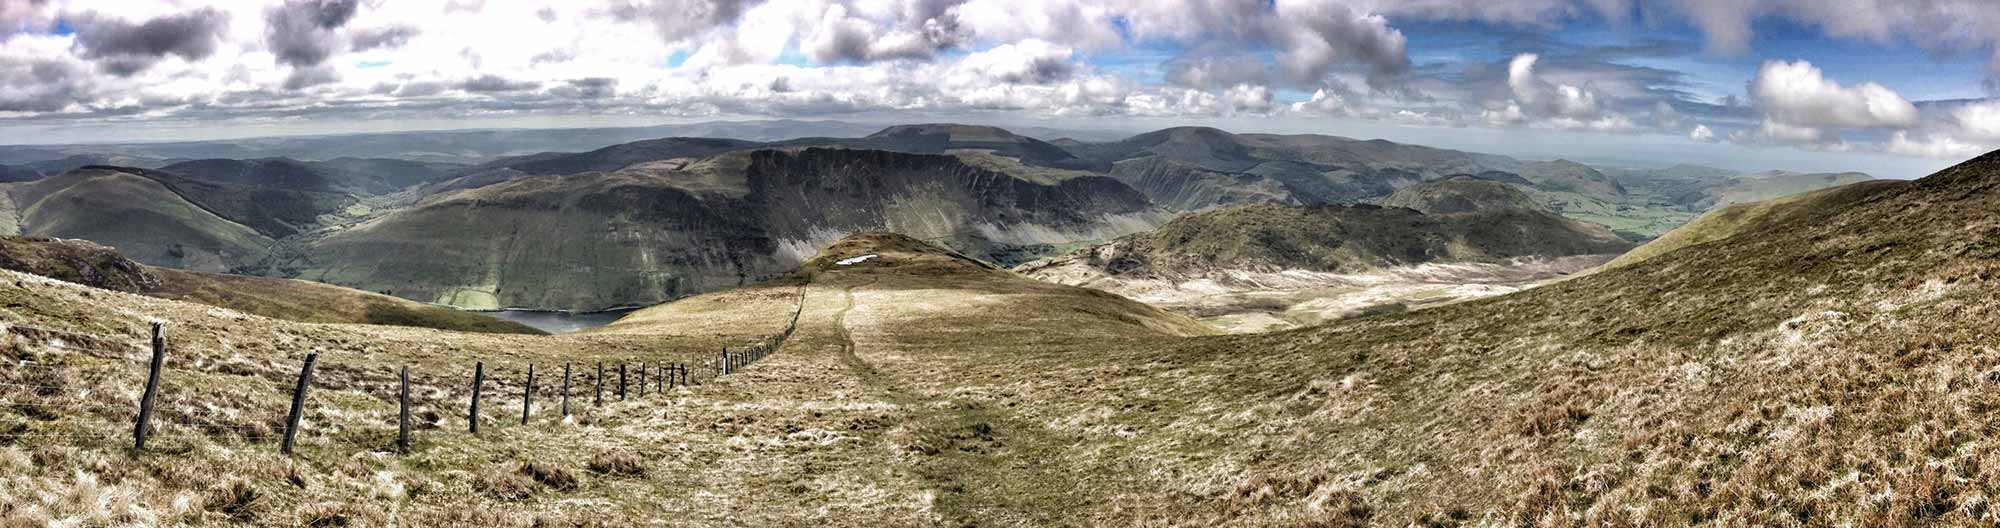 Looking Down the Ridge to Tal-y-Llyn